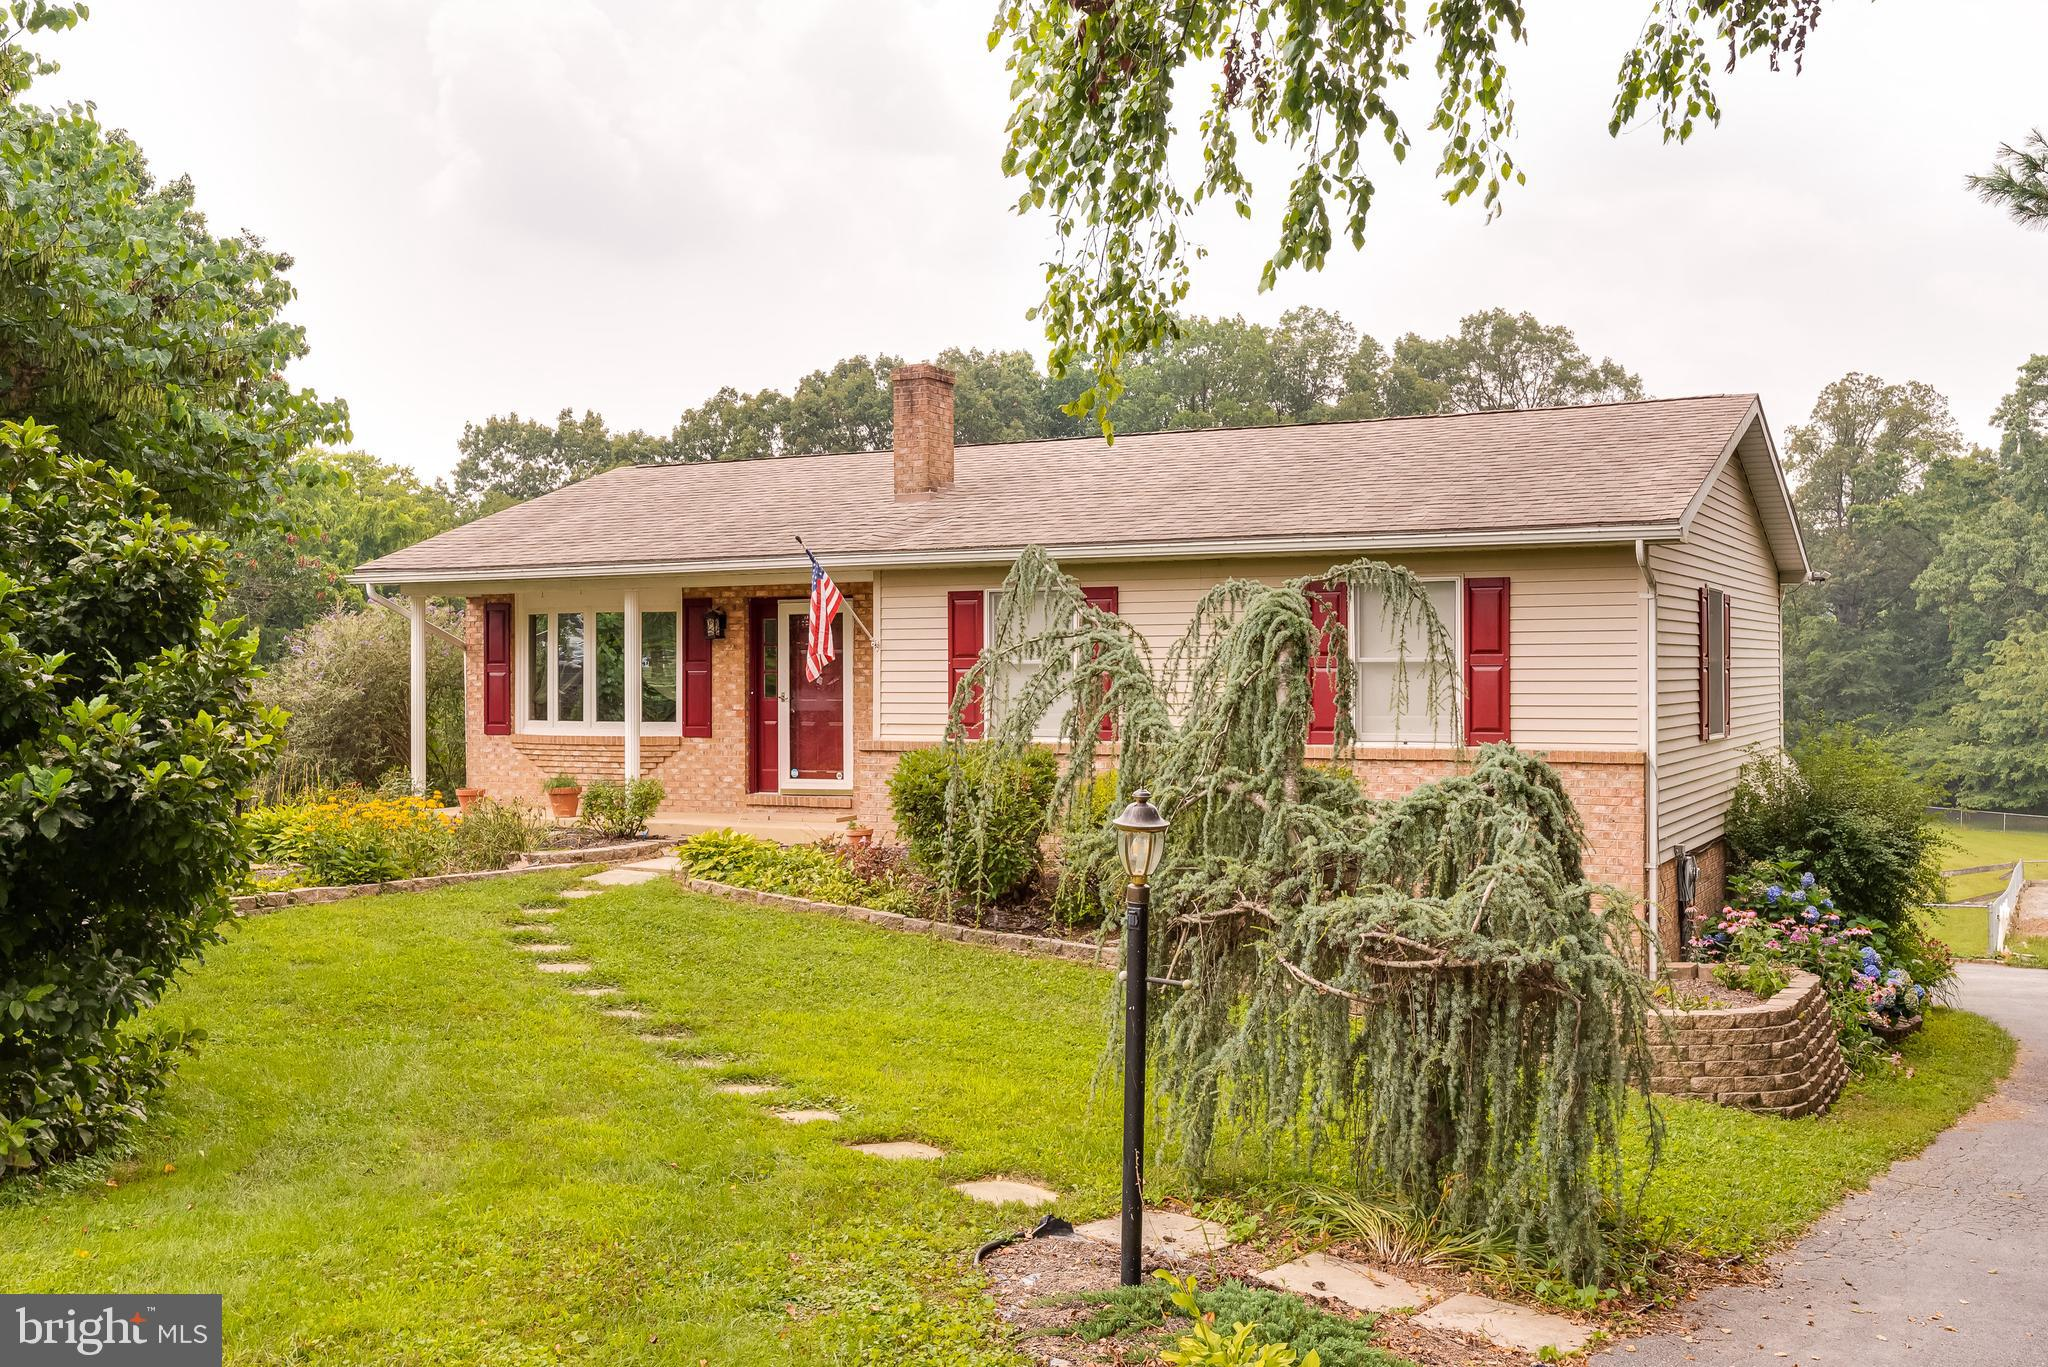 Well maintained ranch home on over 1.5 acres.  Great location. 3 Bedrooms 2 full bathrooms.  Kitchen